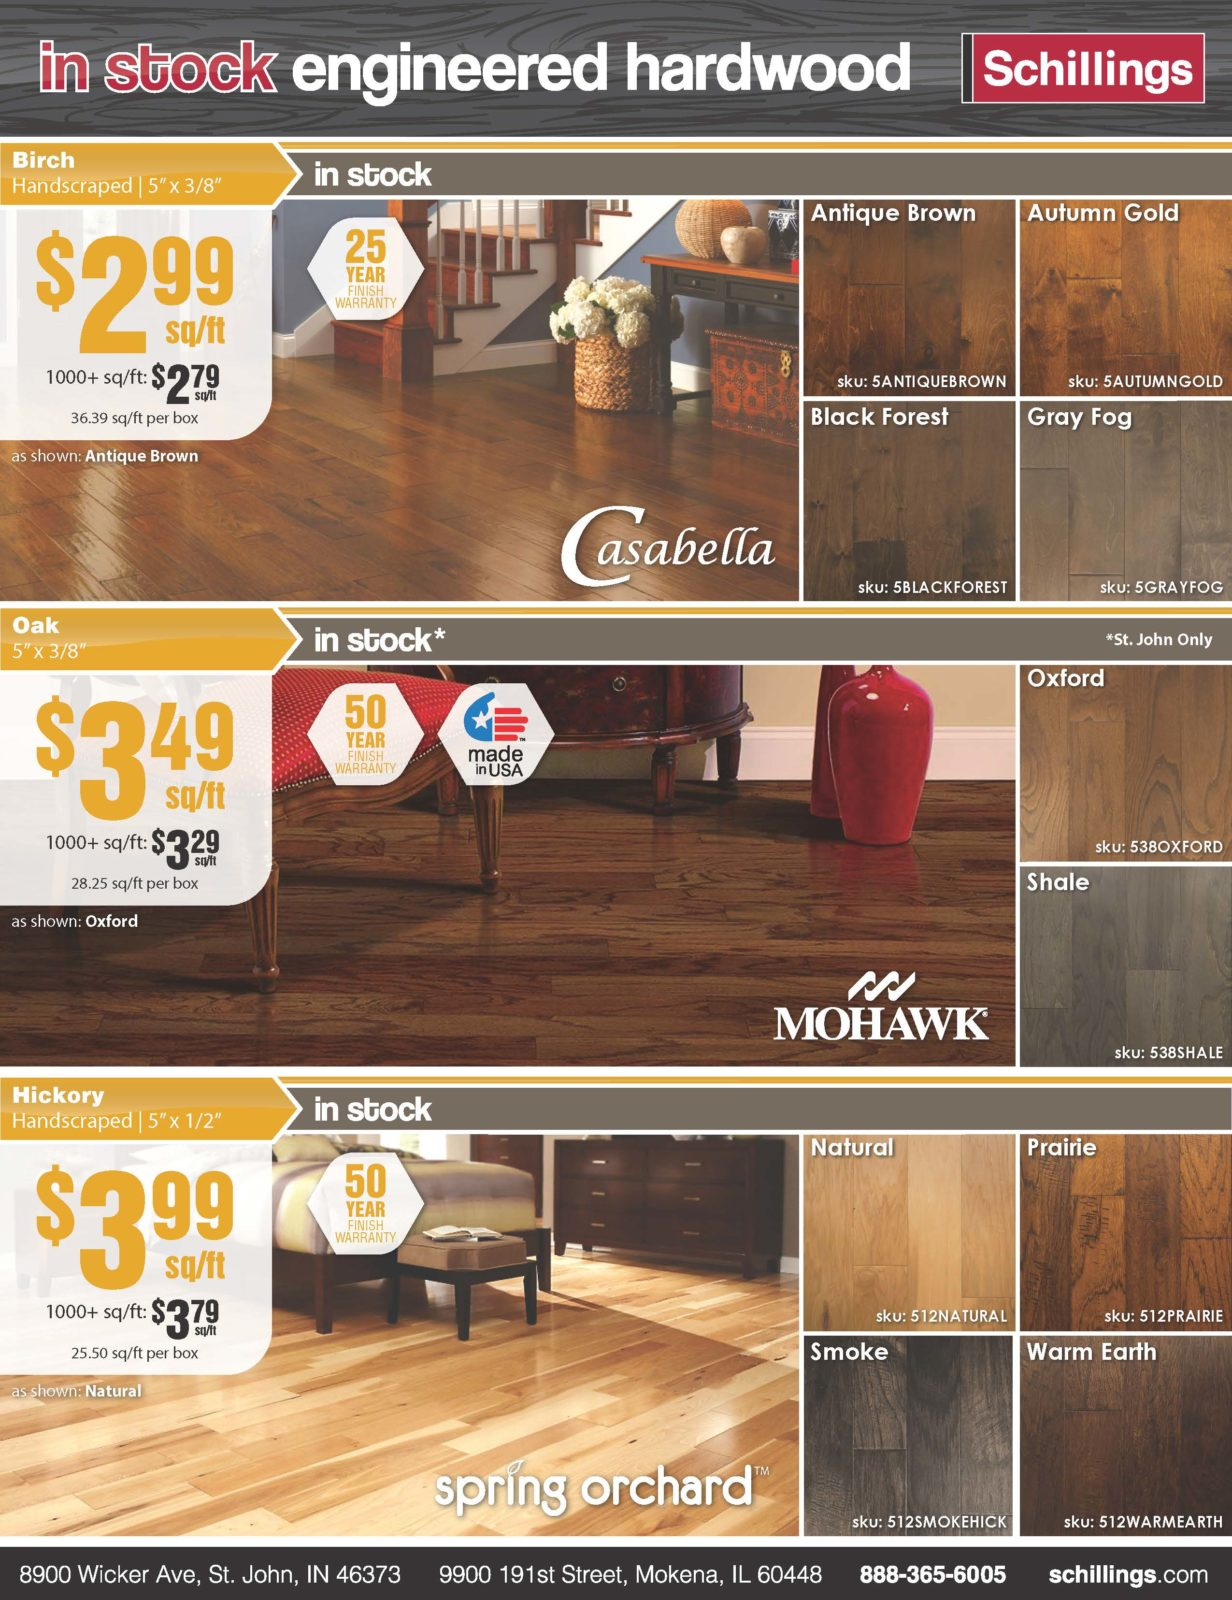 engineered hardwood hot list